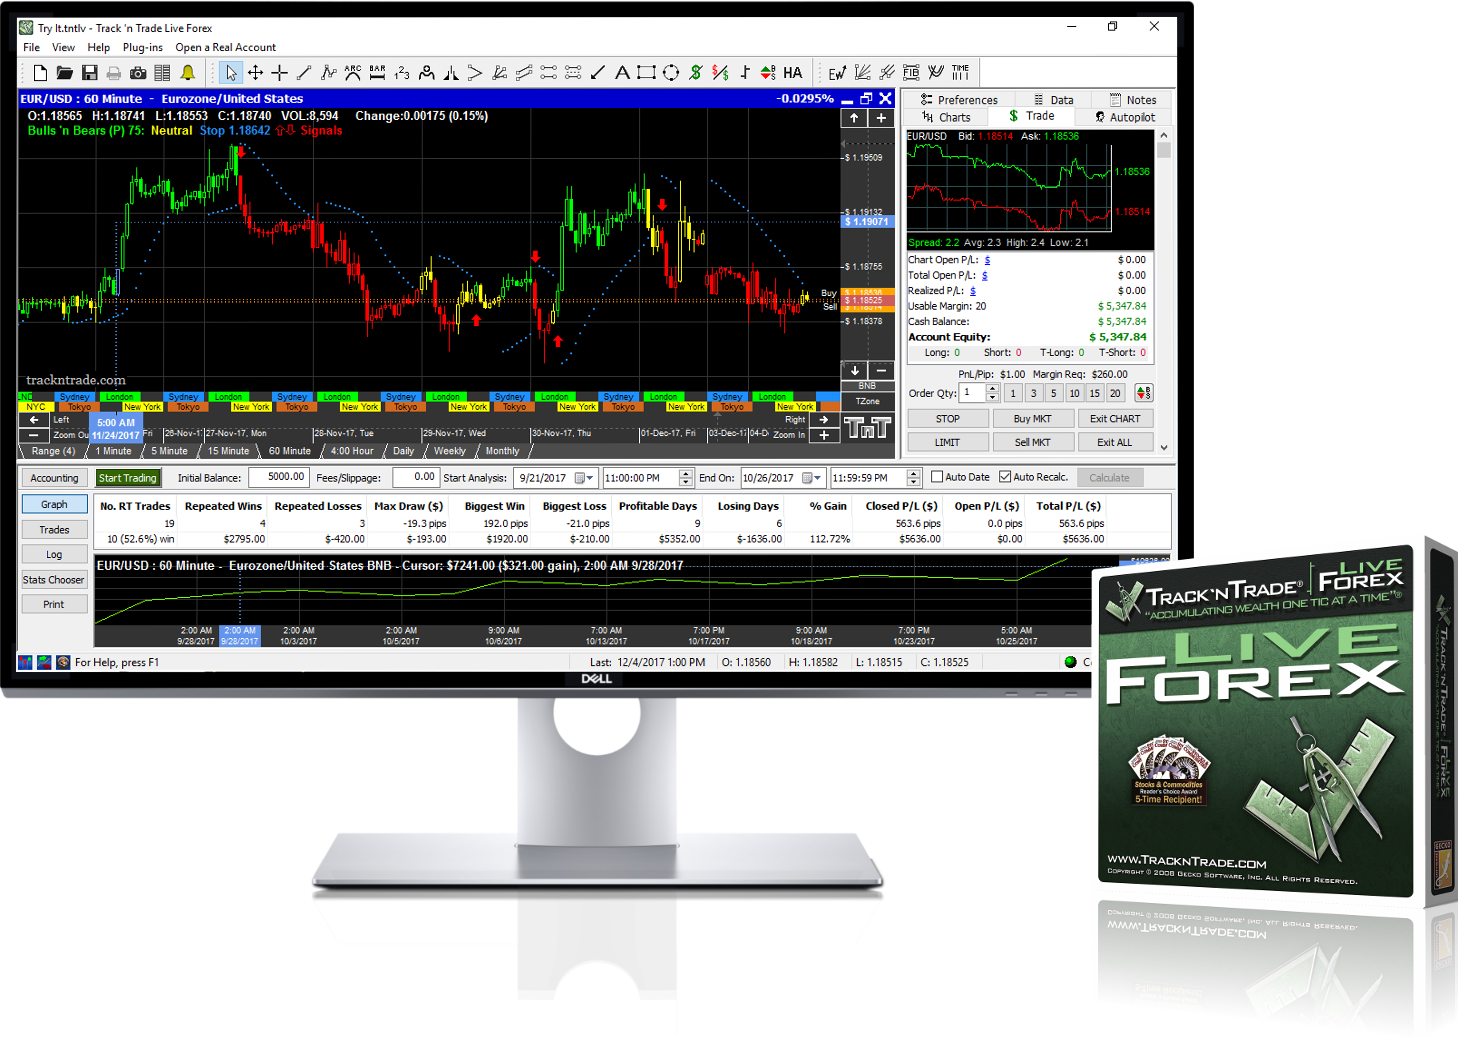 Free forex trading tools software